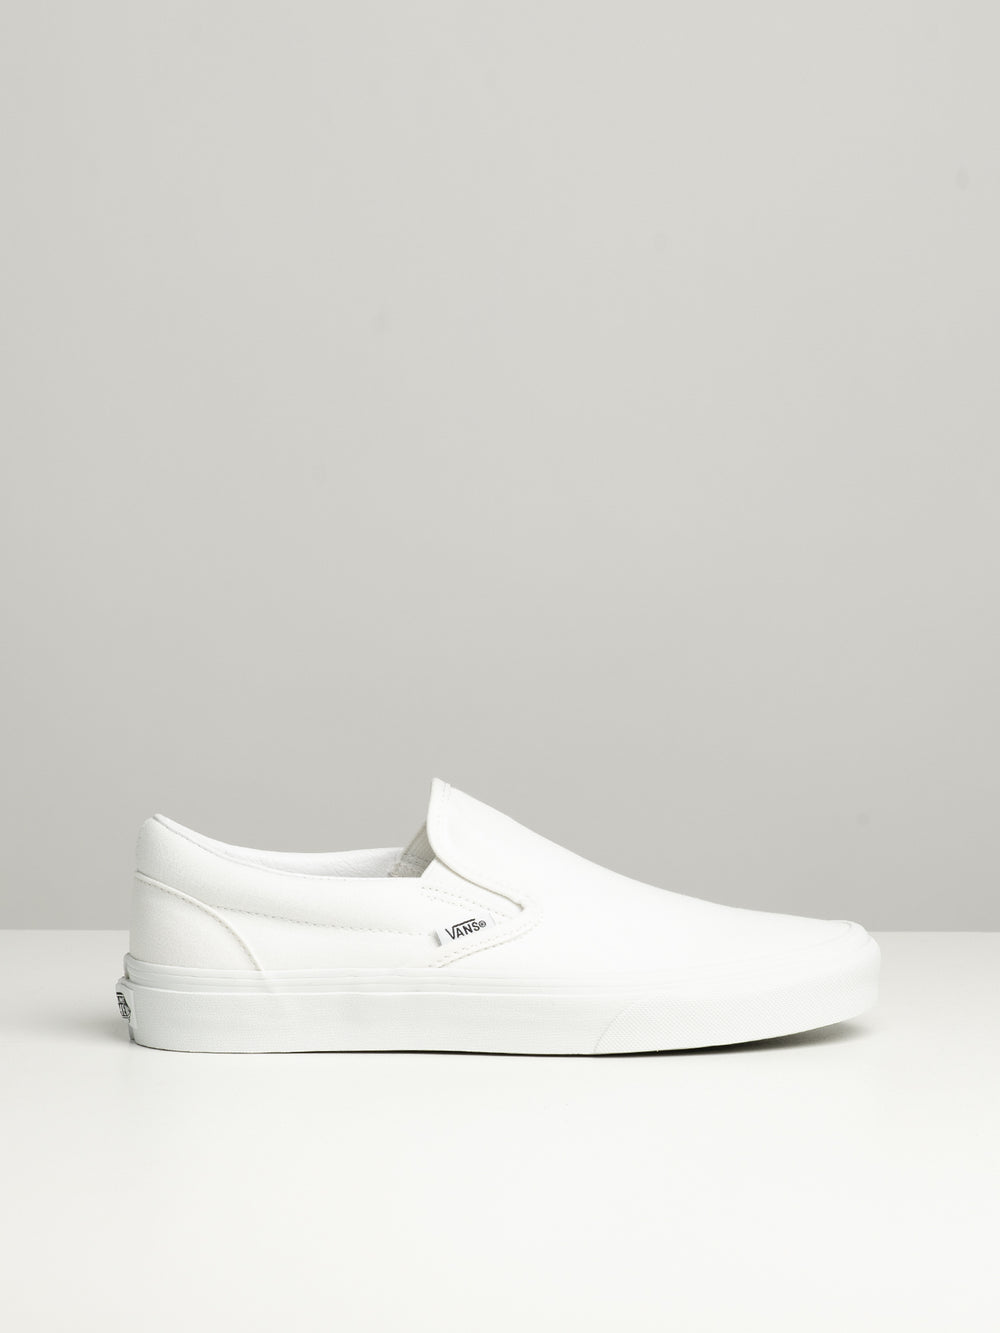 MENS CLASSIC SLIP ON TRUE WHITE CANVAS SHOES